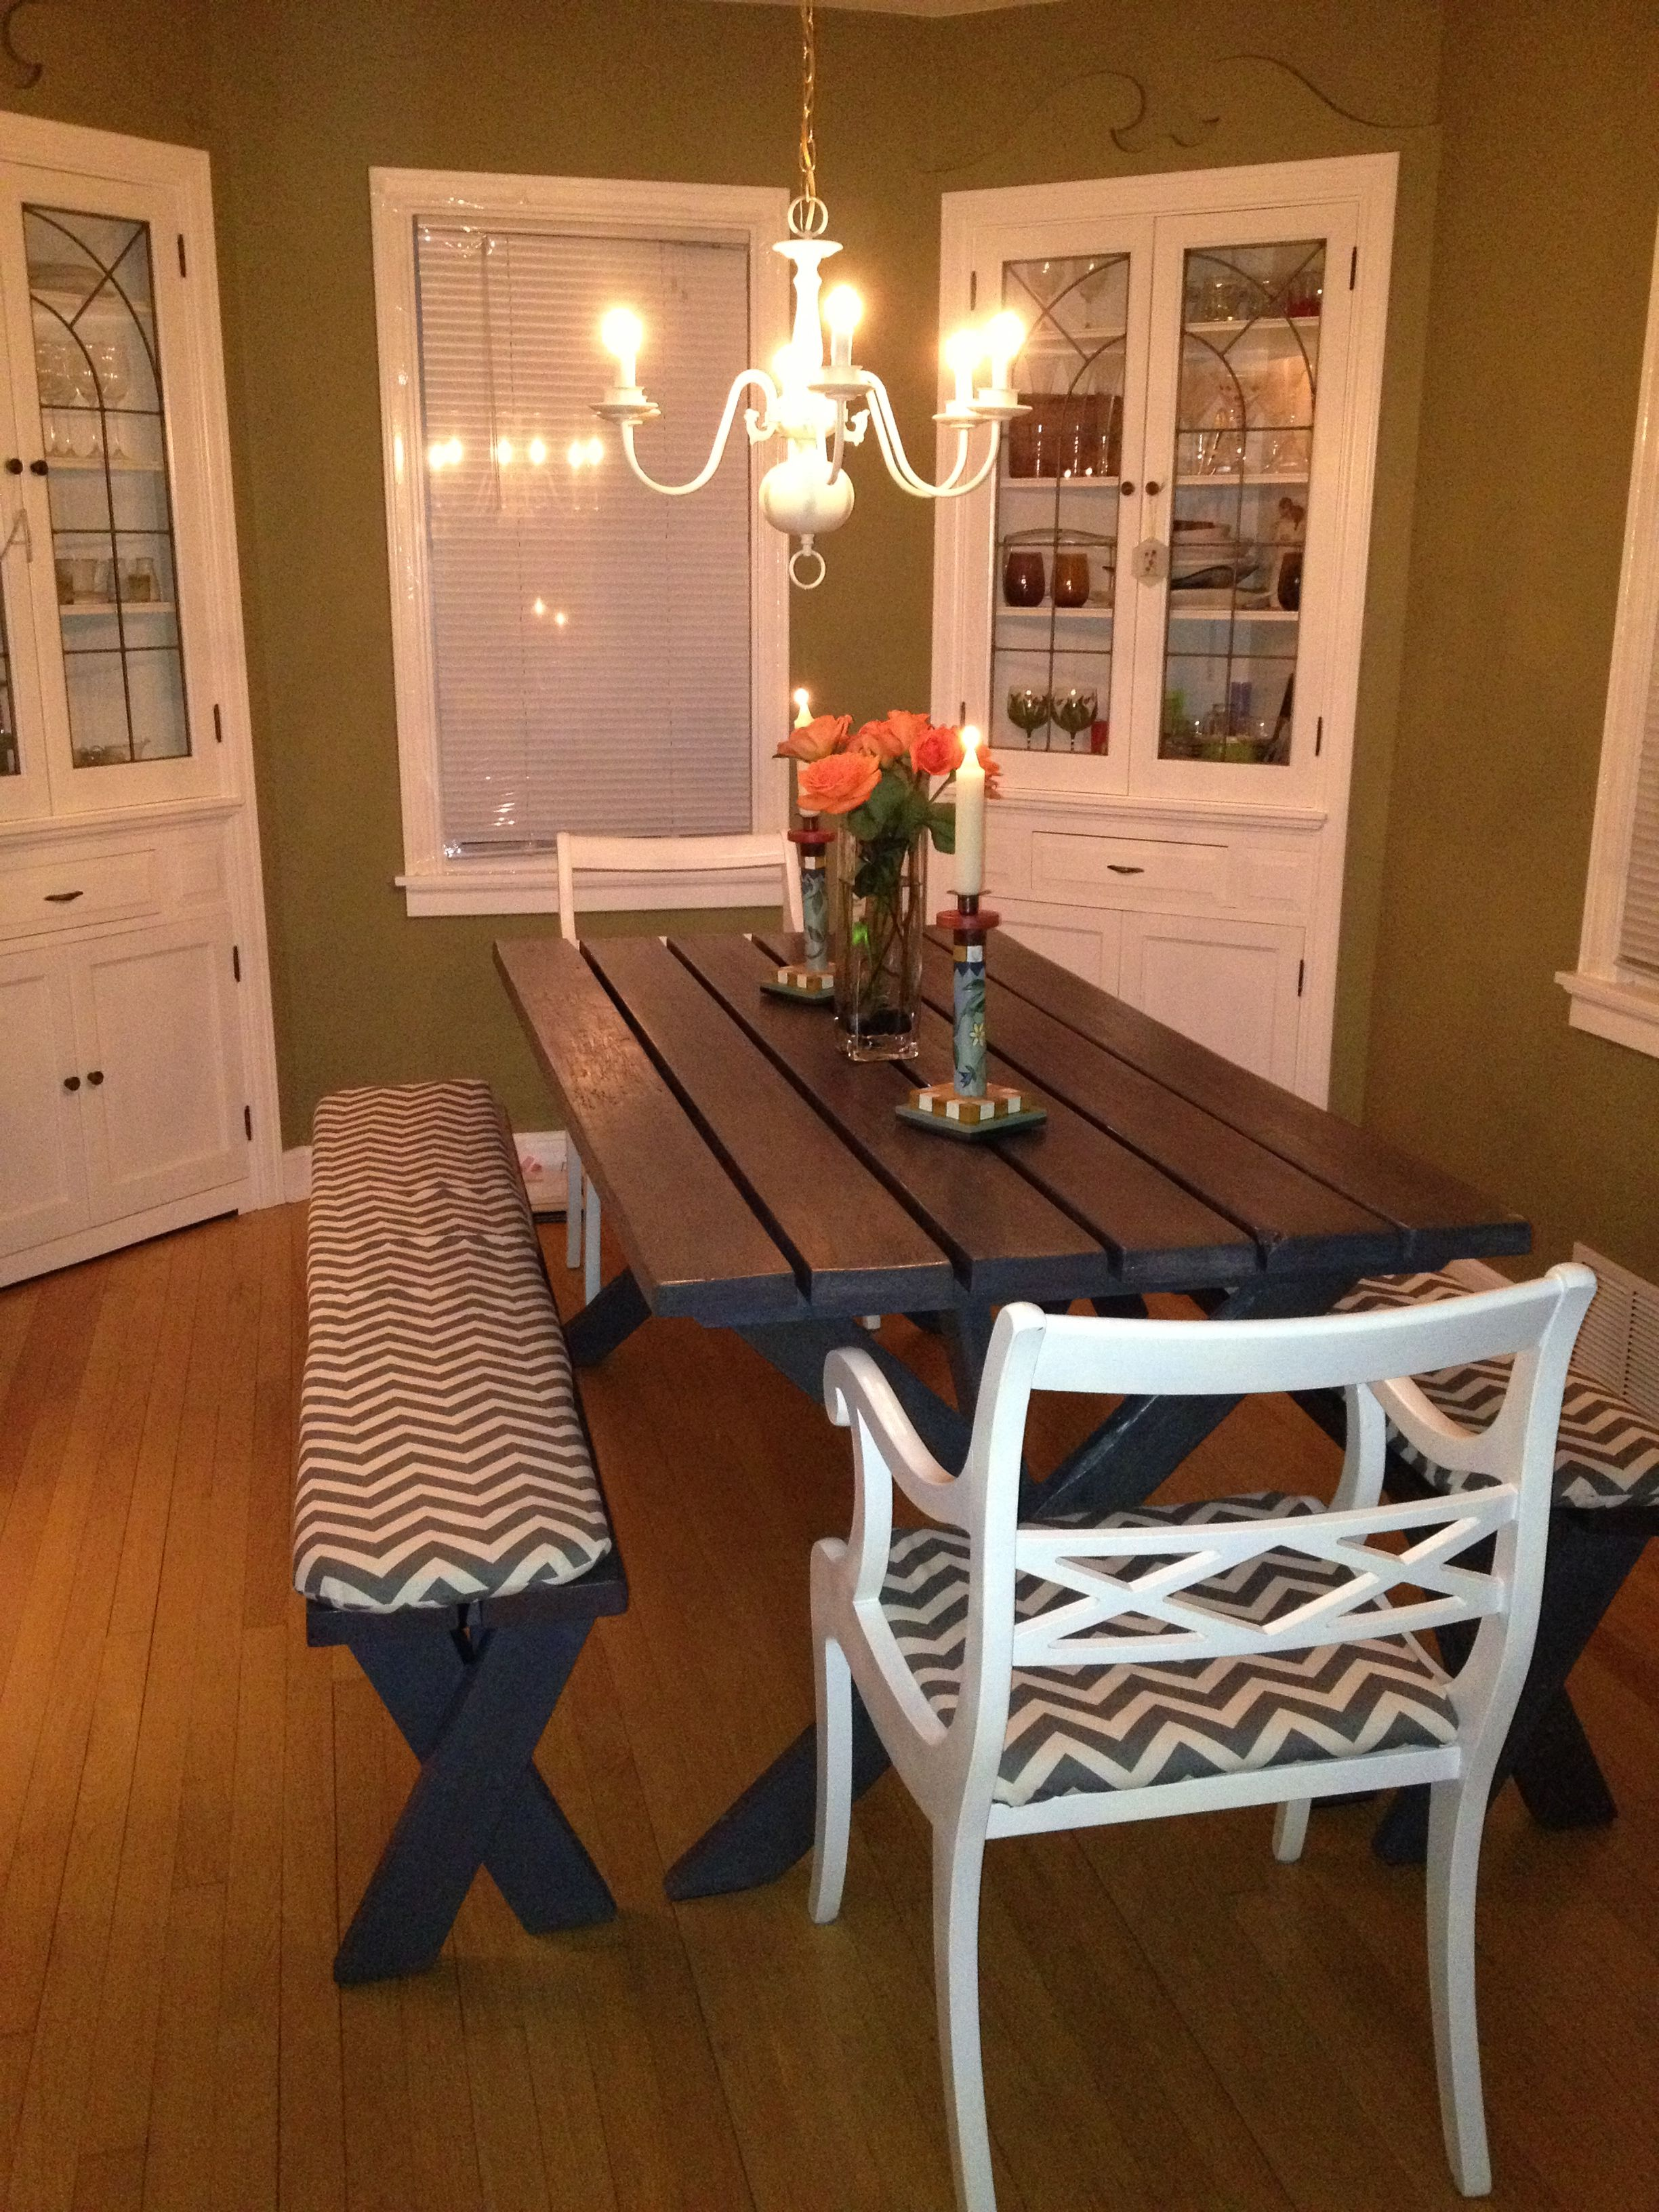 Refurbished from an old/beat-up picnic table to a chic gray ...